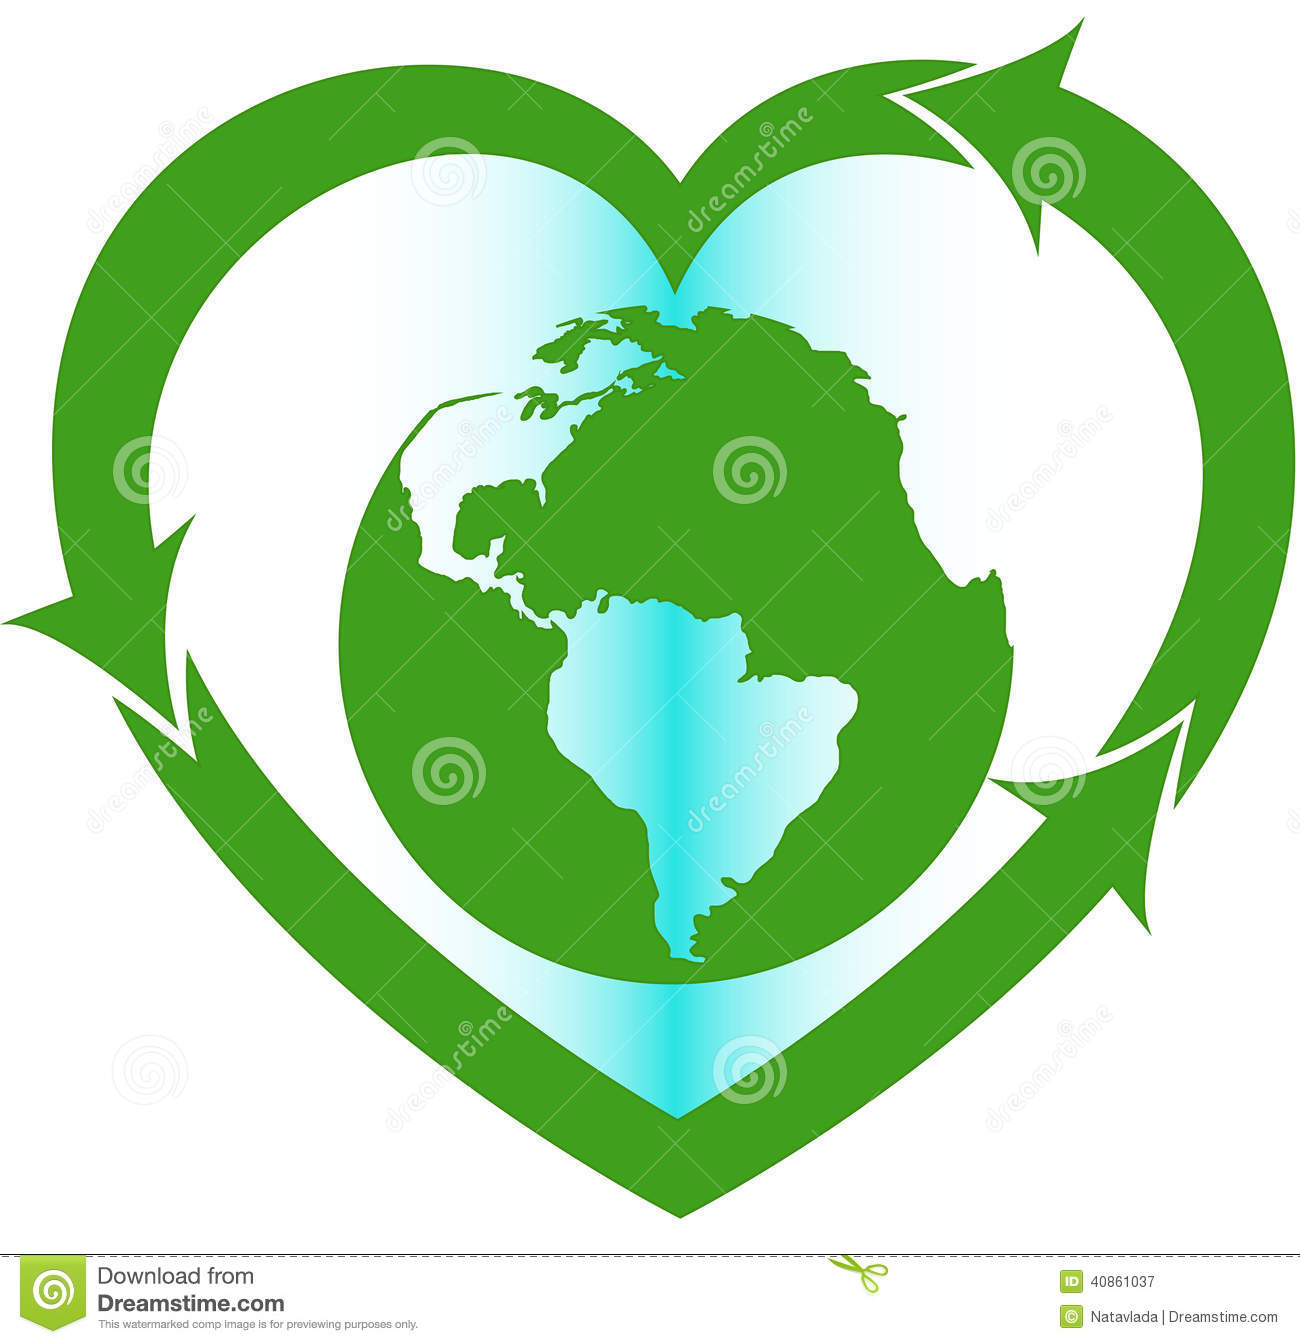 Love Earth Eco Oriented Sign Stock Photo - Image: 40861037